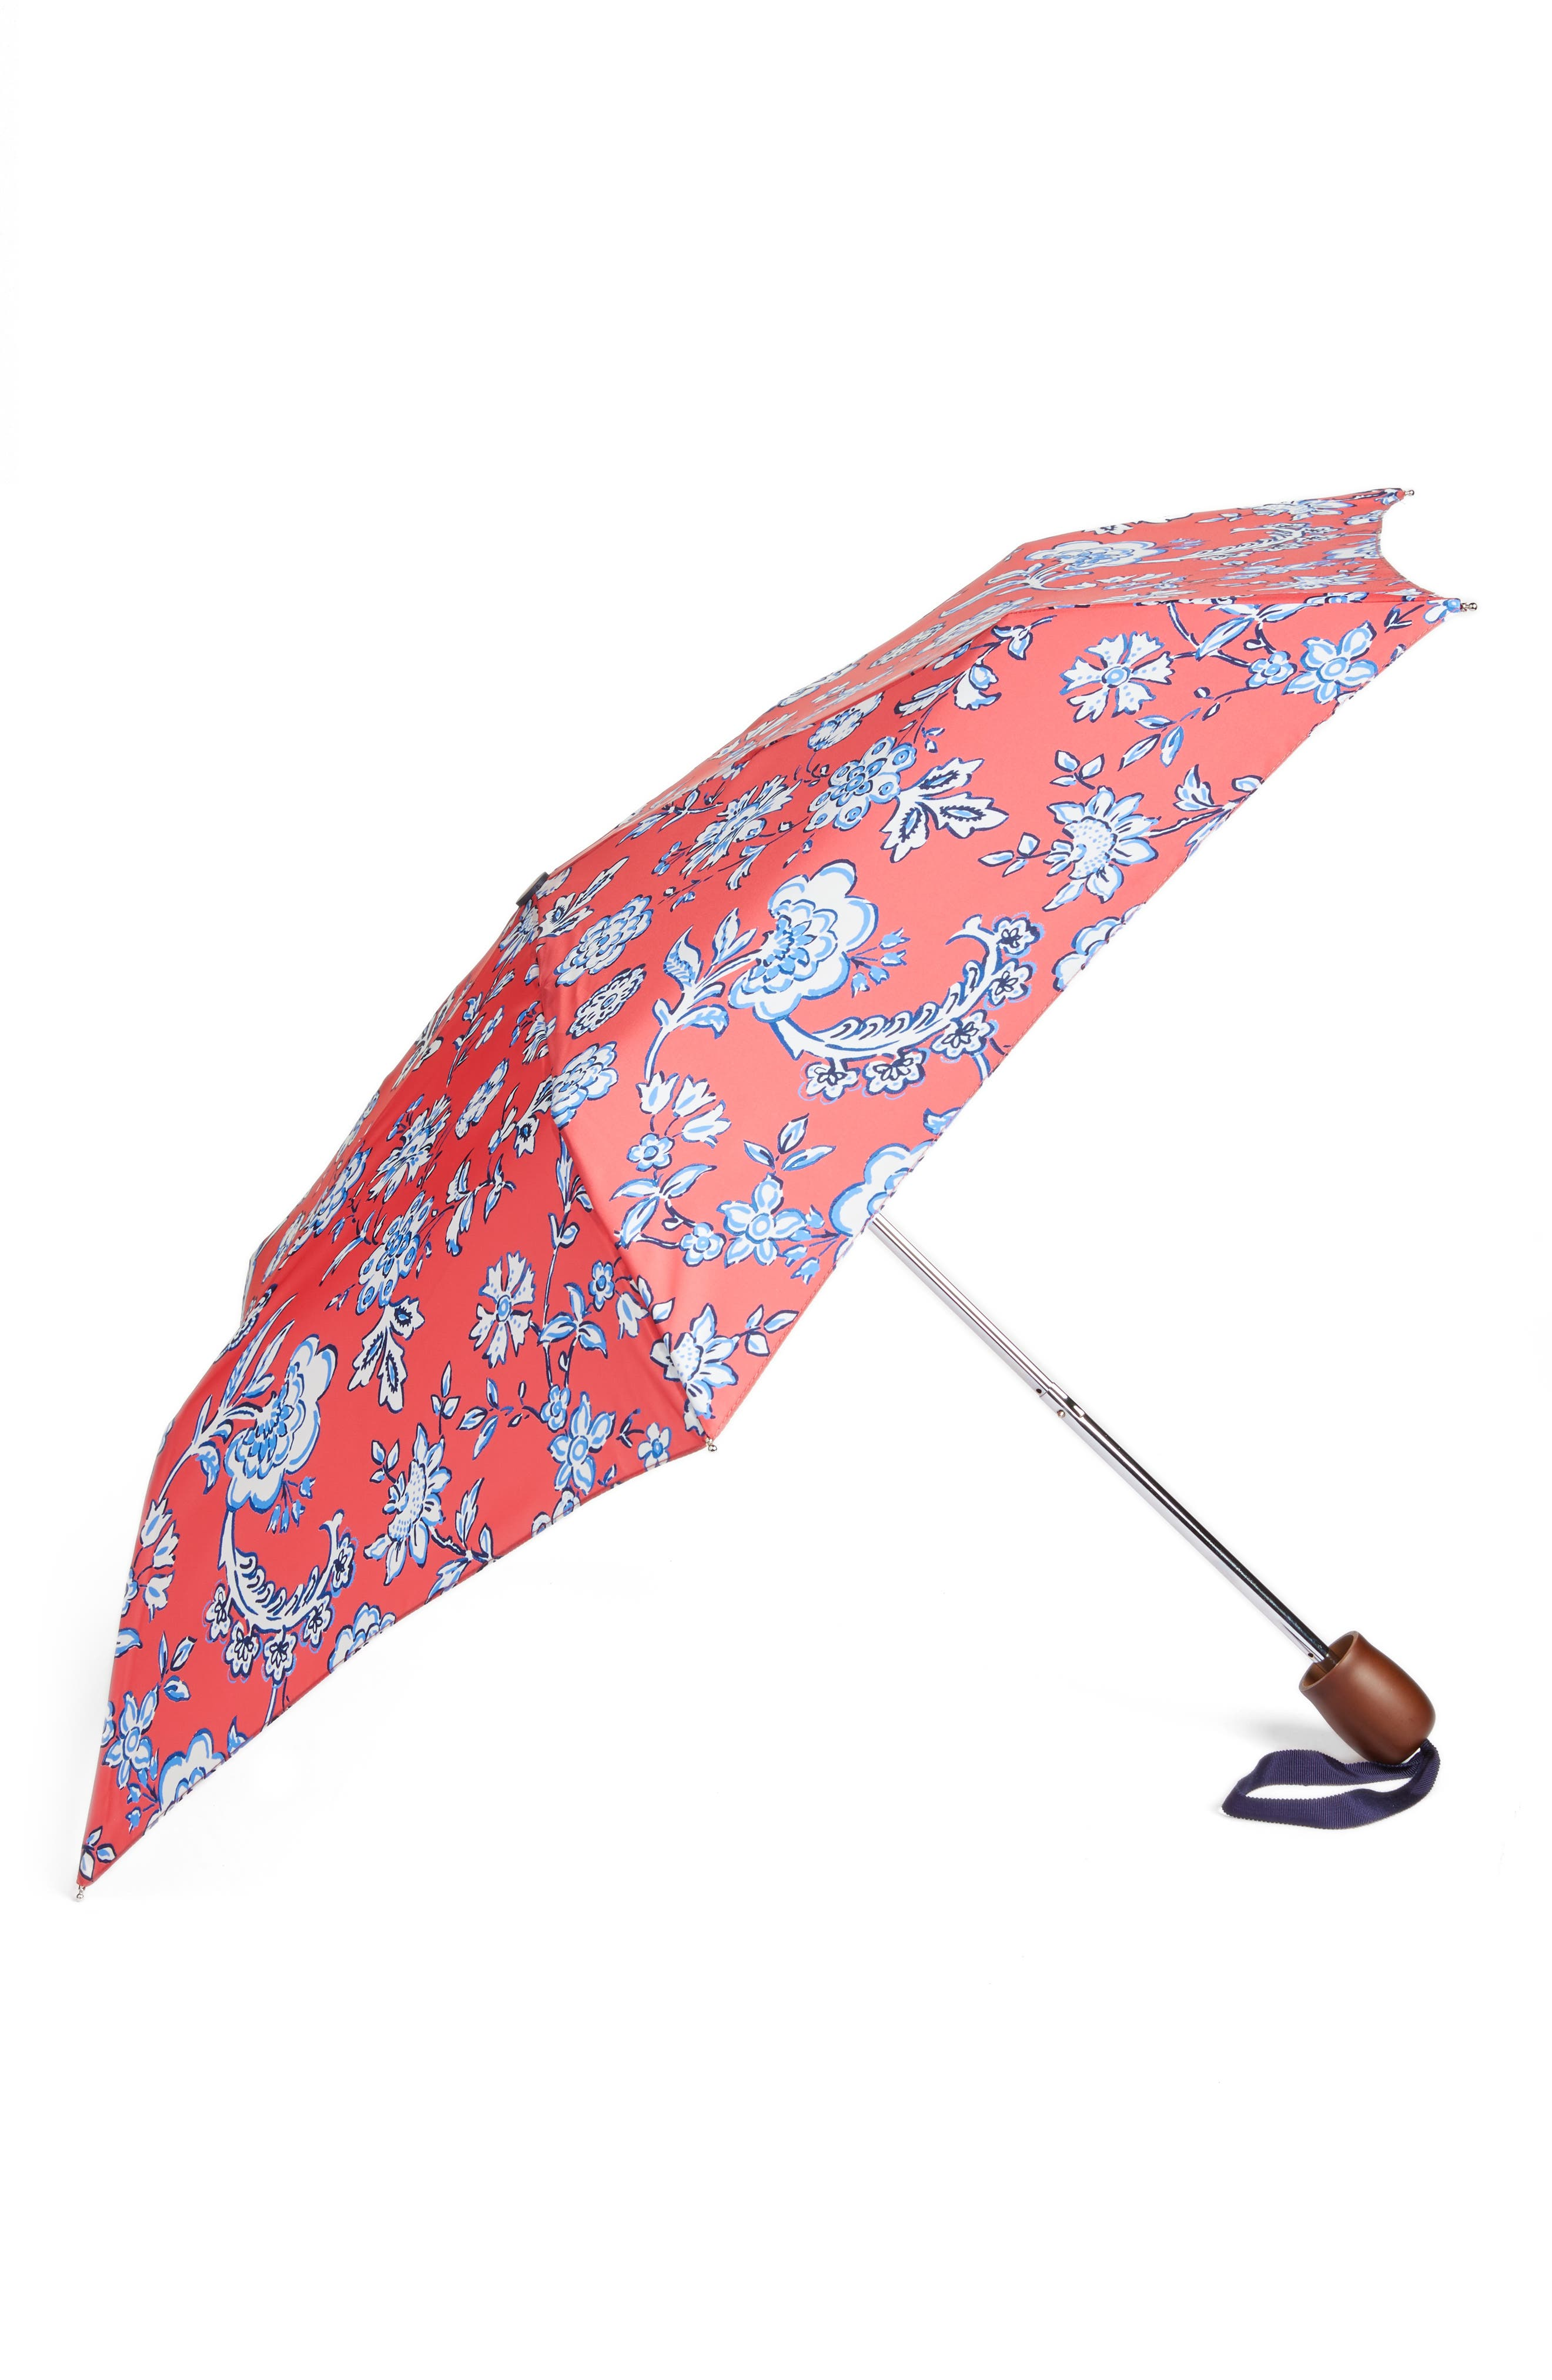 Right as Rain Print Umbrella,                         Main,                         color, Red Sky Indienne